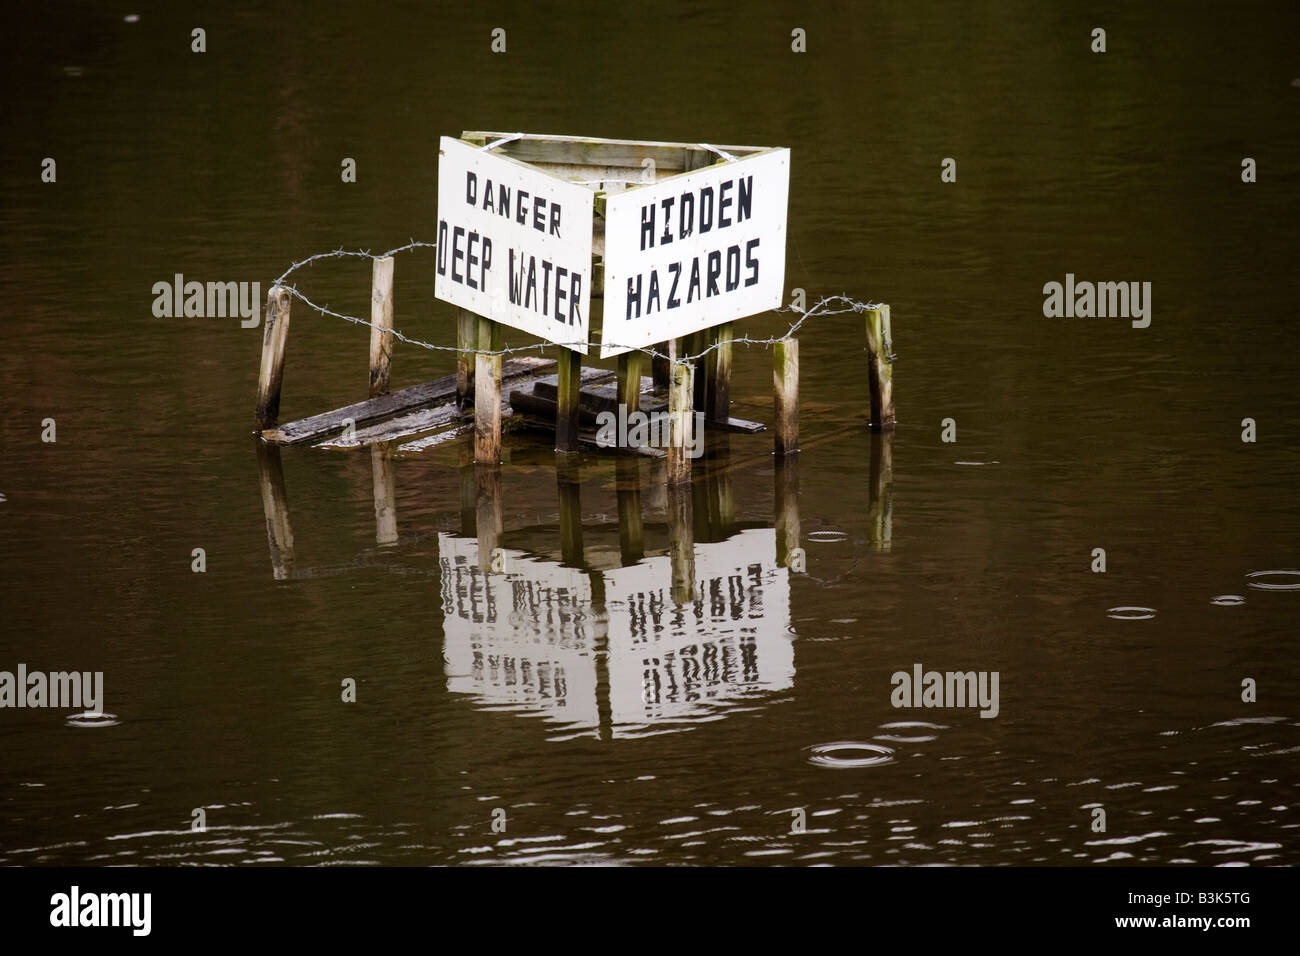 A sign in a quarry in County Durham, England, warns of deep water and hidden hazards. - Stock Image